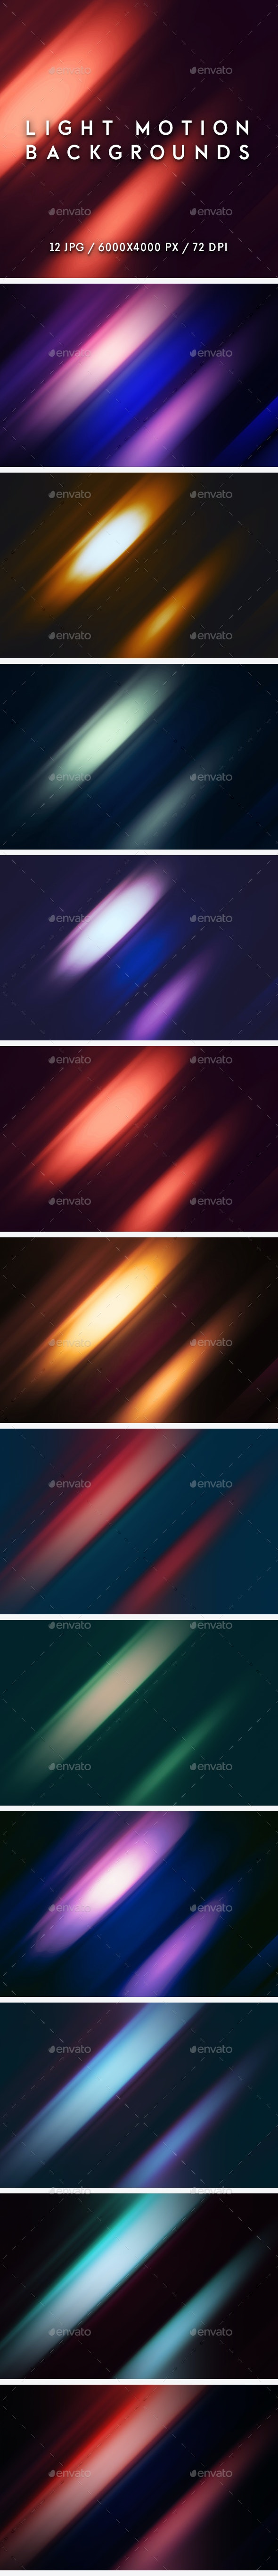 Light Motion Backgrounds - Abstract Backgrounds